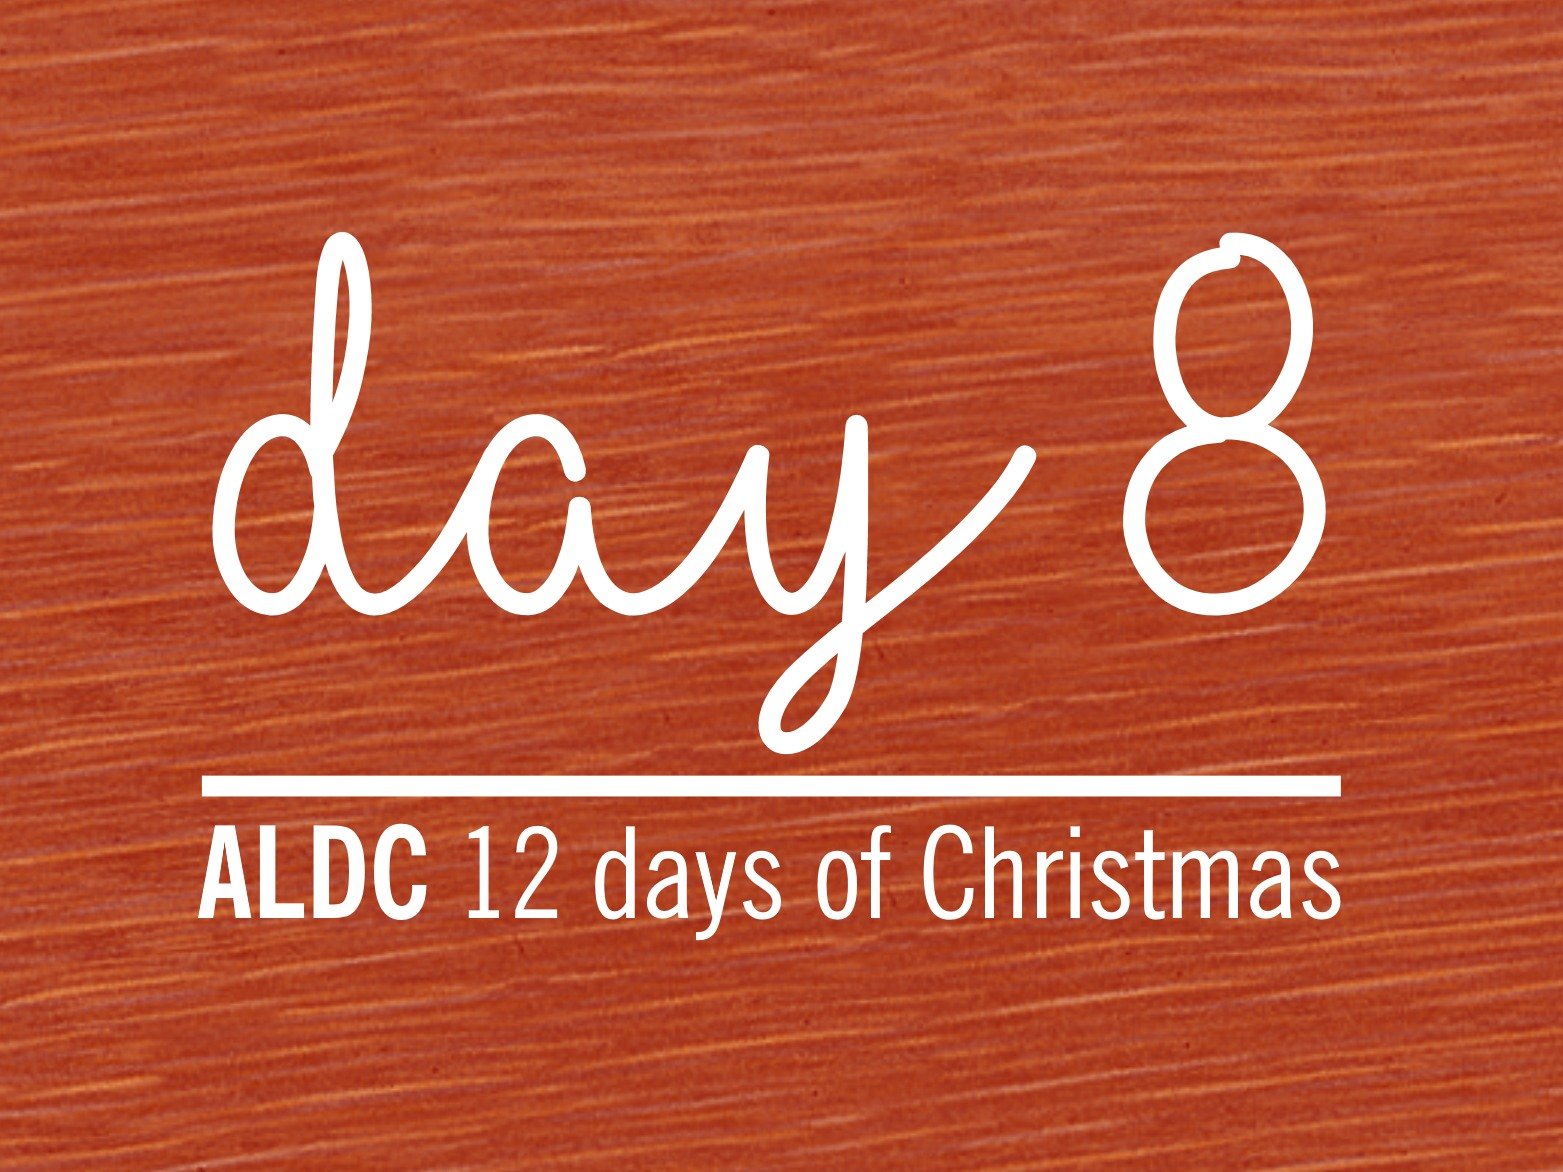 On the eighth day of Christmas, I gave to ALDC…